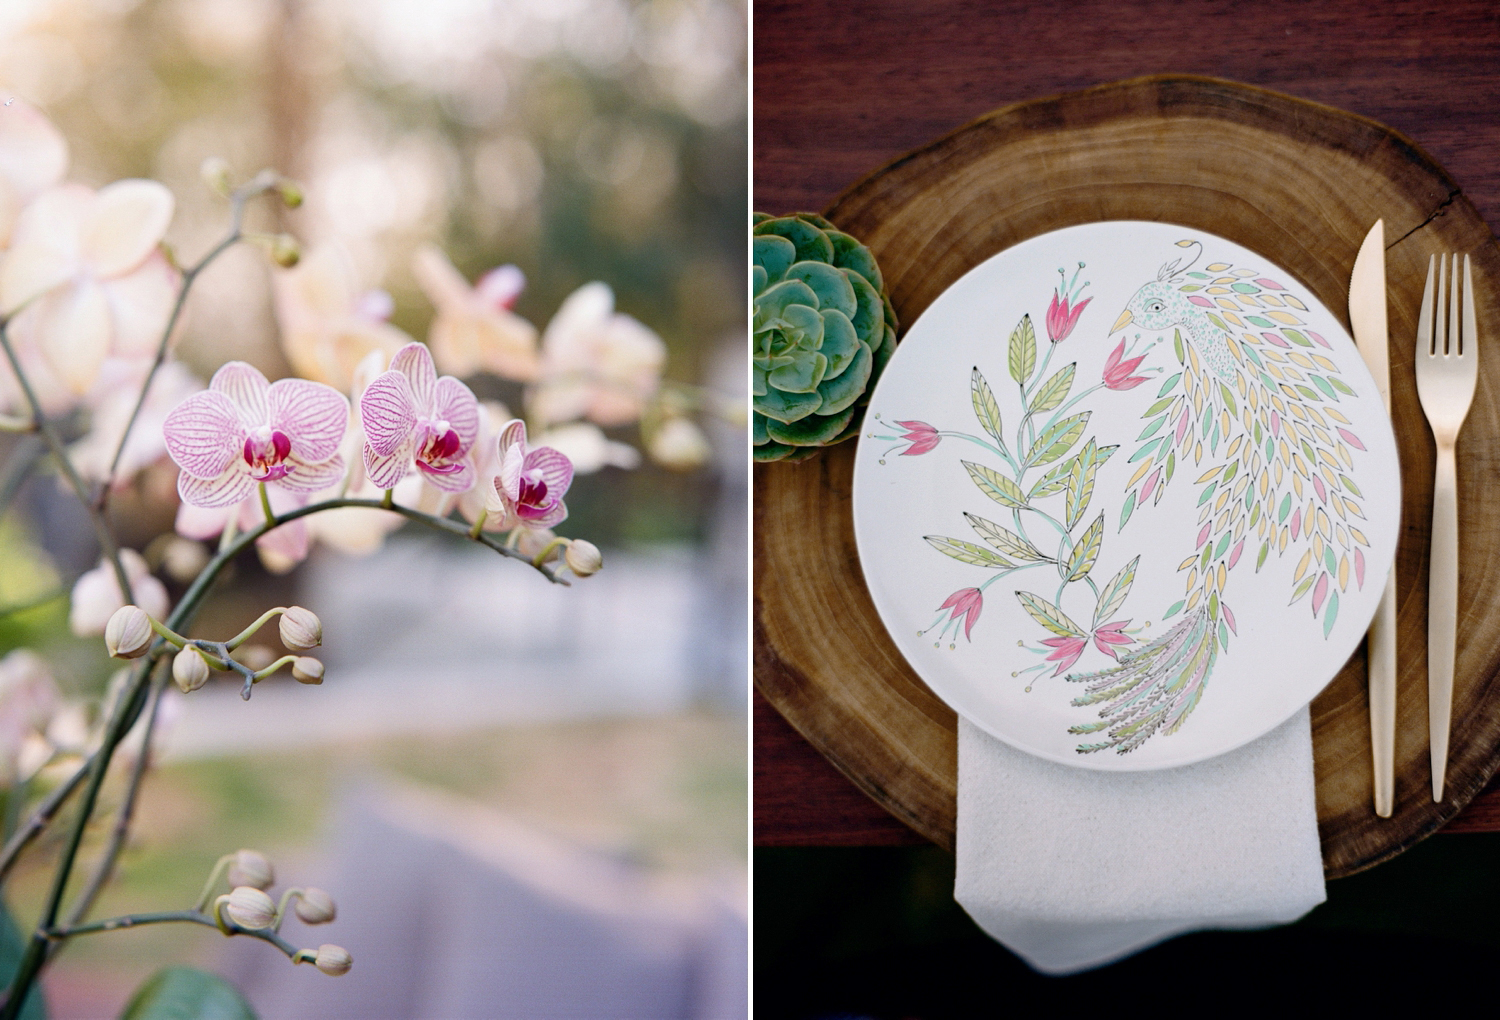 illustrated plates, wedding inspiration costa rica